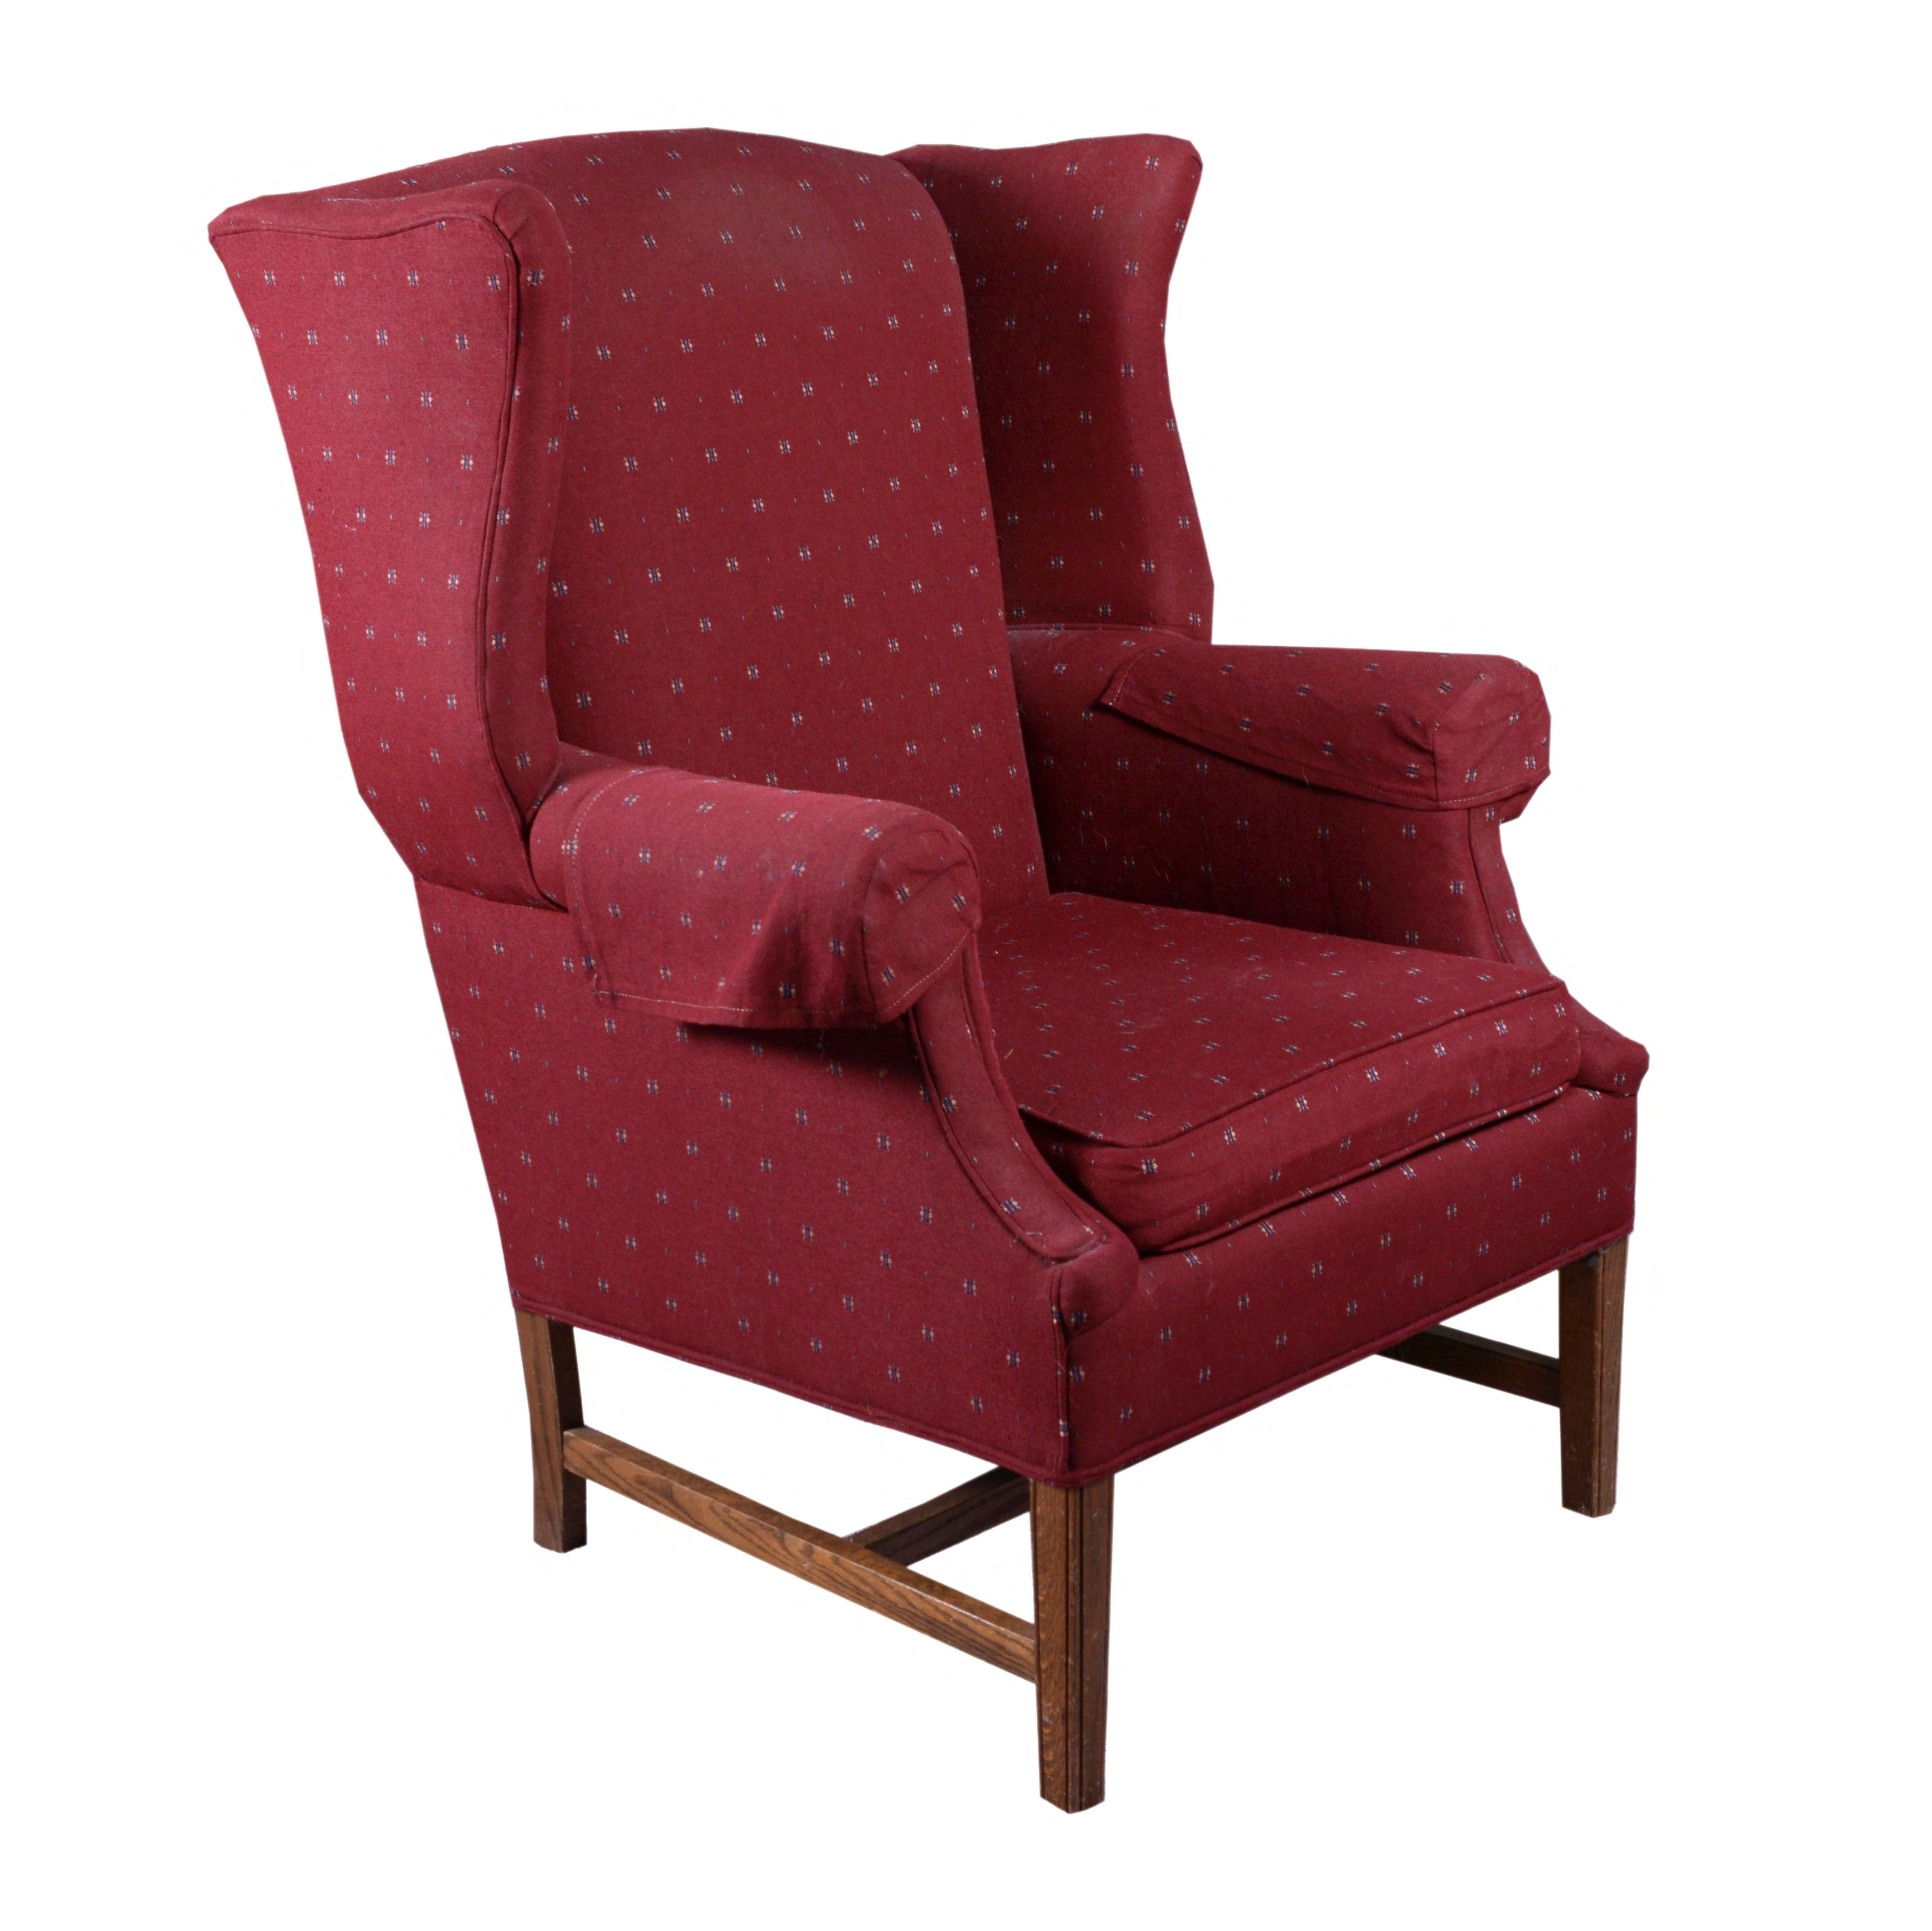 Red Upholstered Wingback Chair by Encore Chairs